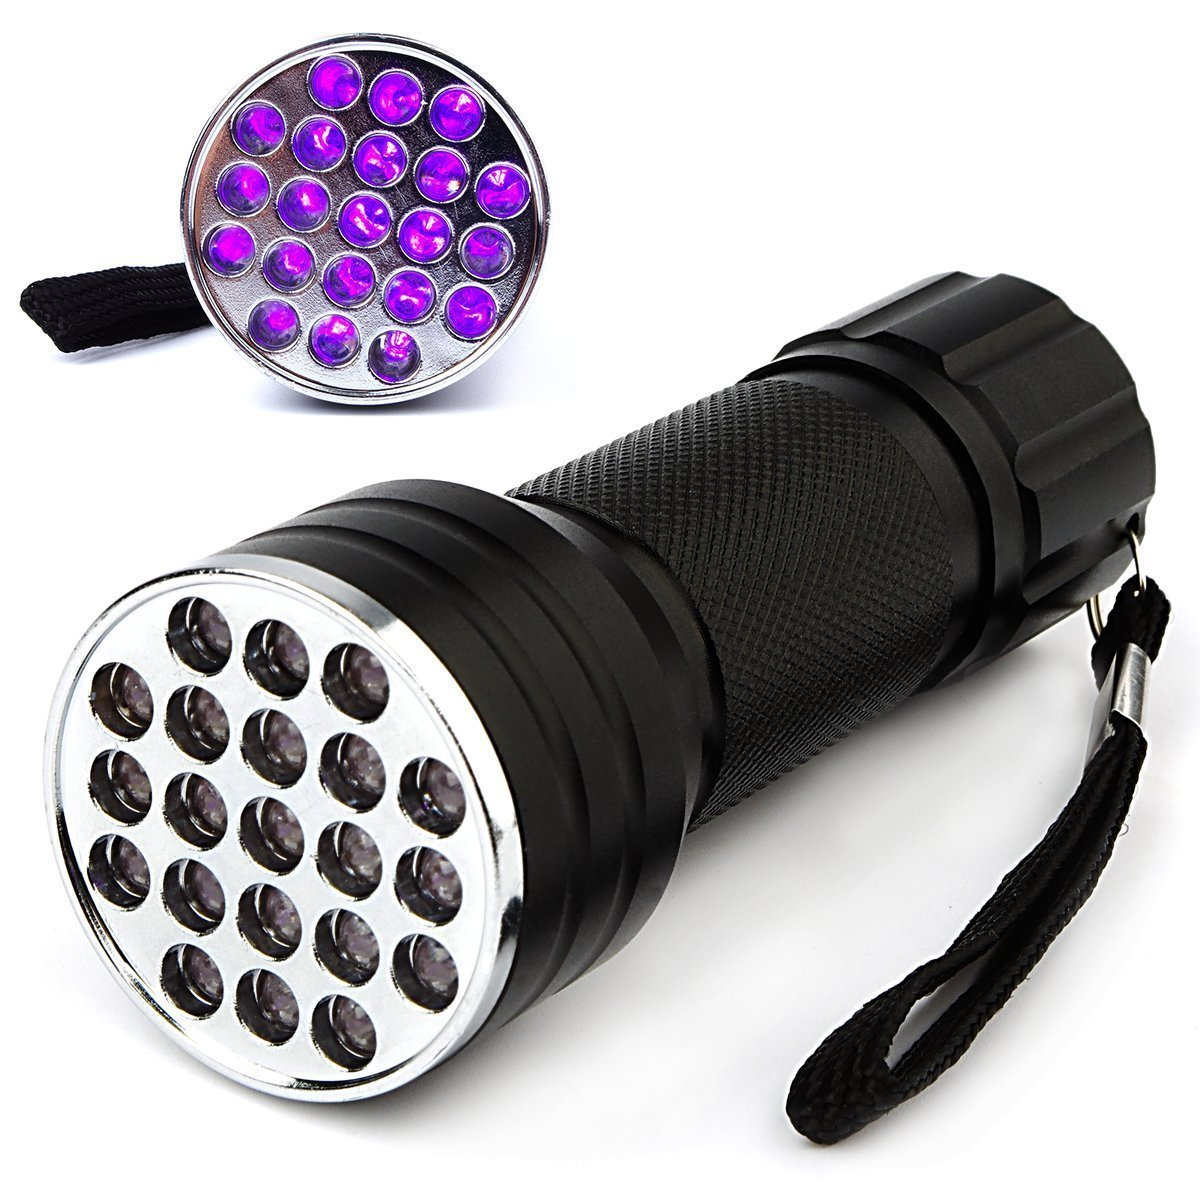 Portable 20+1 LED Flashlight Wide Beam Ultra-violet Light Detective Spy Tools Secret Sign Invisible Ink Money Checker Science Learning Discover Blacklight Dirt Strain Inspection Equipment FLA42